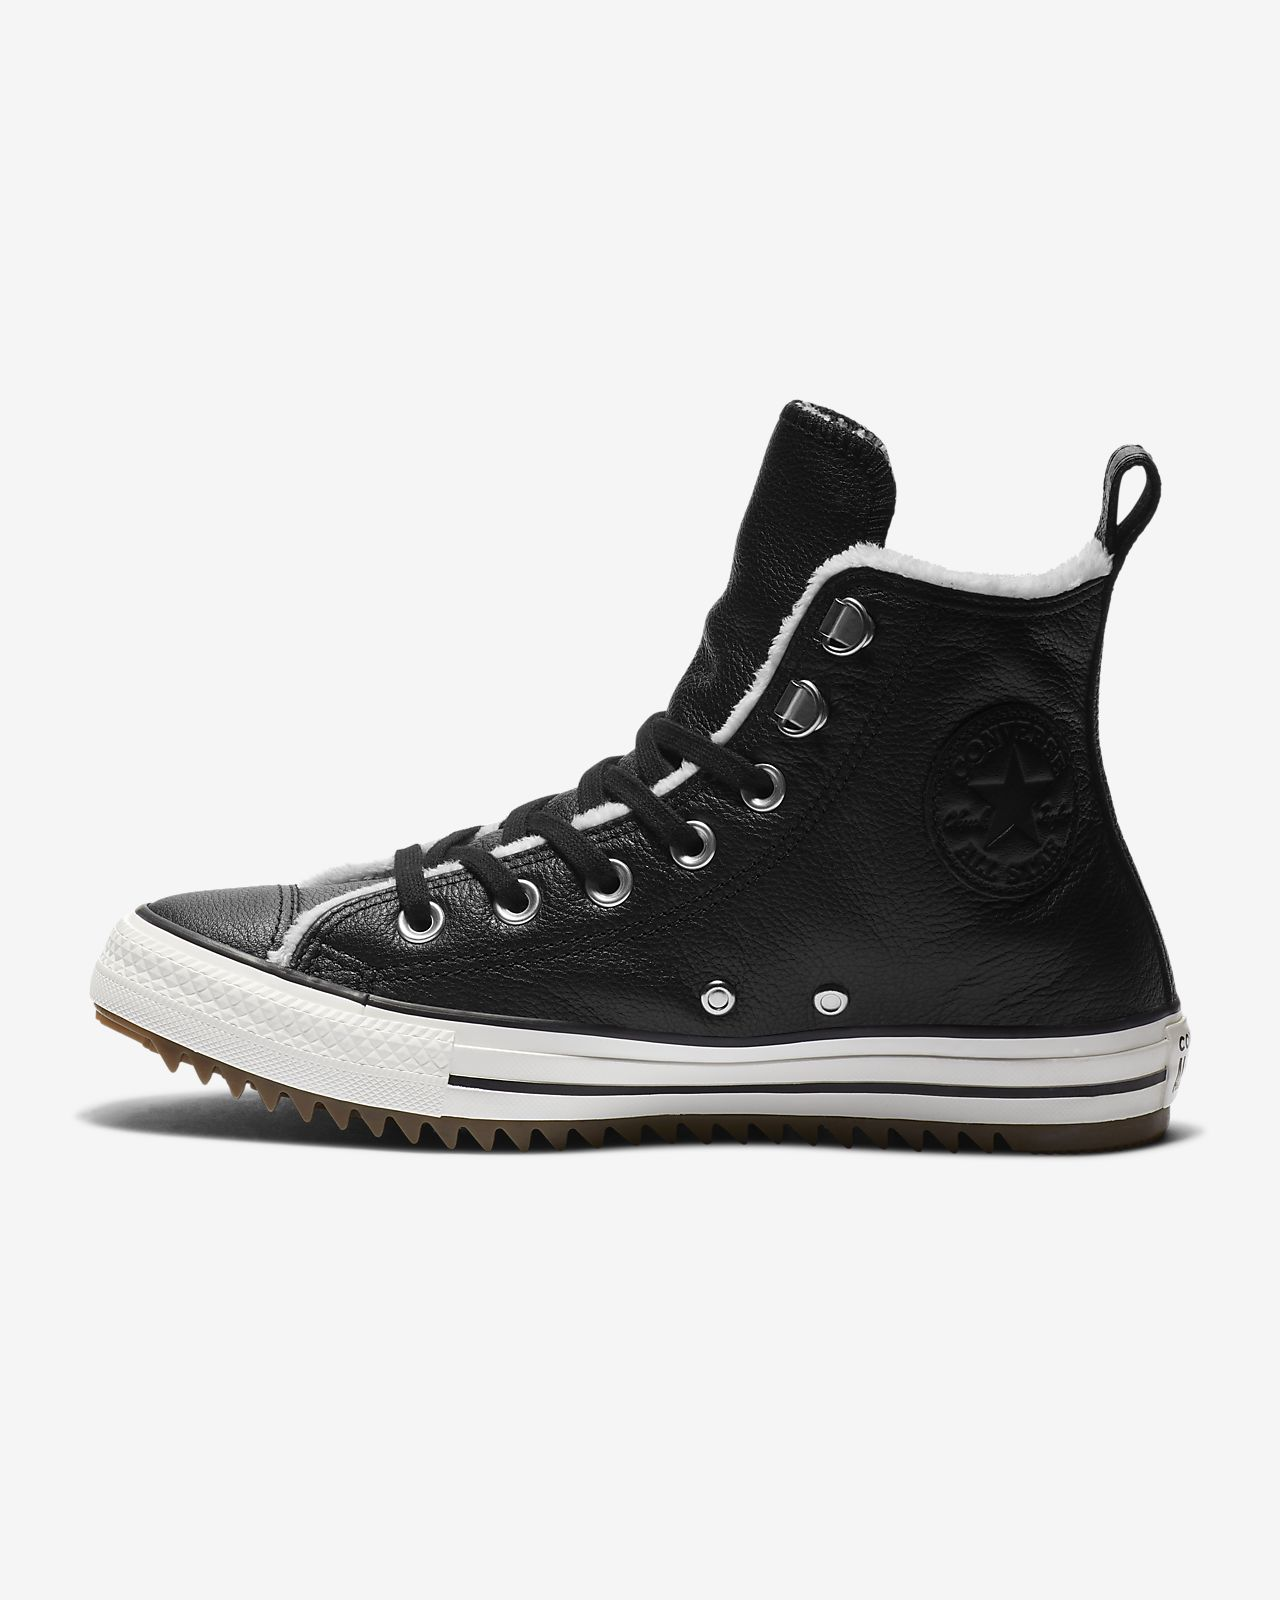 converse chuck taylor knock off boots